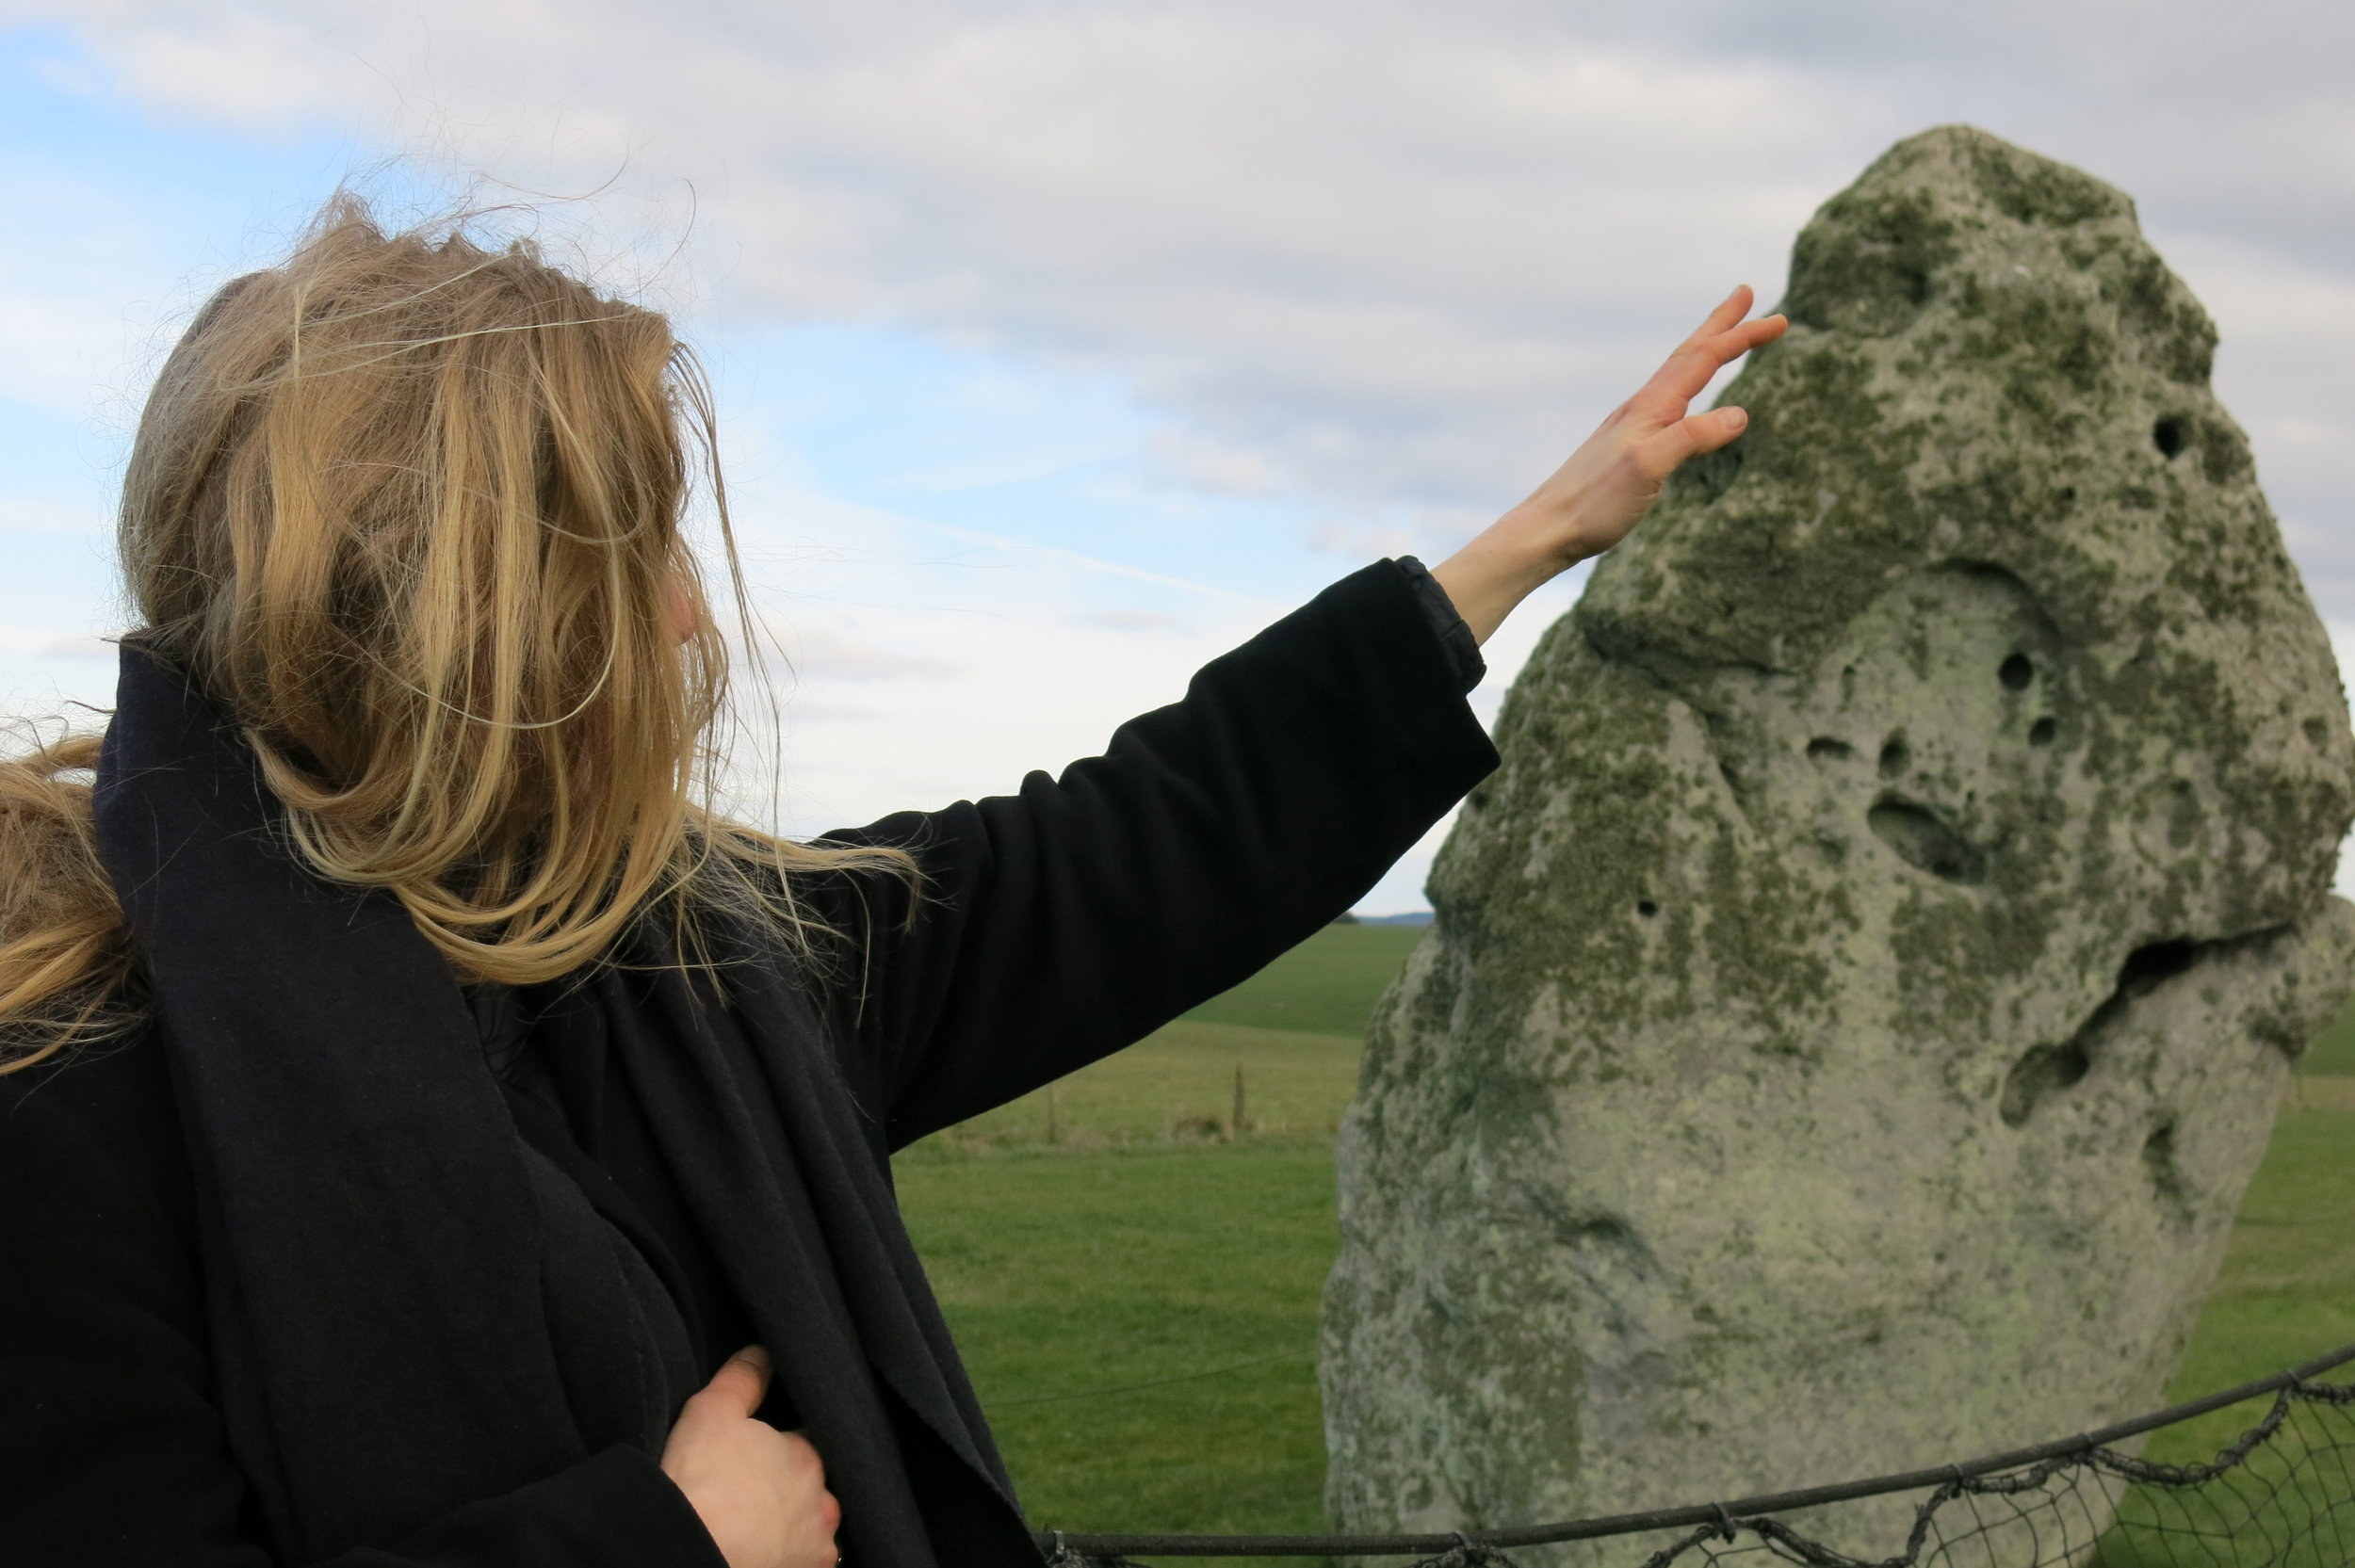 Cultivated code: a trip with mythological artefacts , 2016. Event by Stonehenge led by Matilda Tjäder as part of her residency. Image courtesy the artist and Jupiter Woods, London.